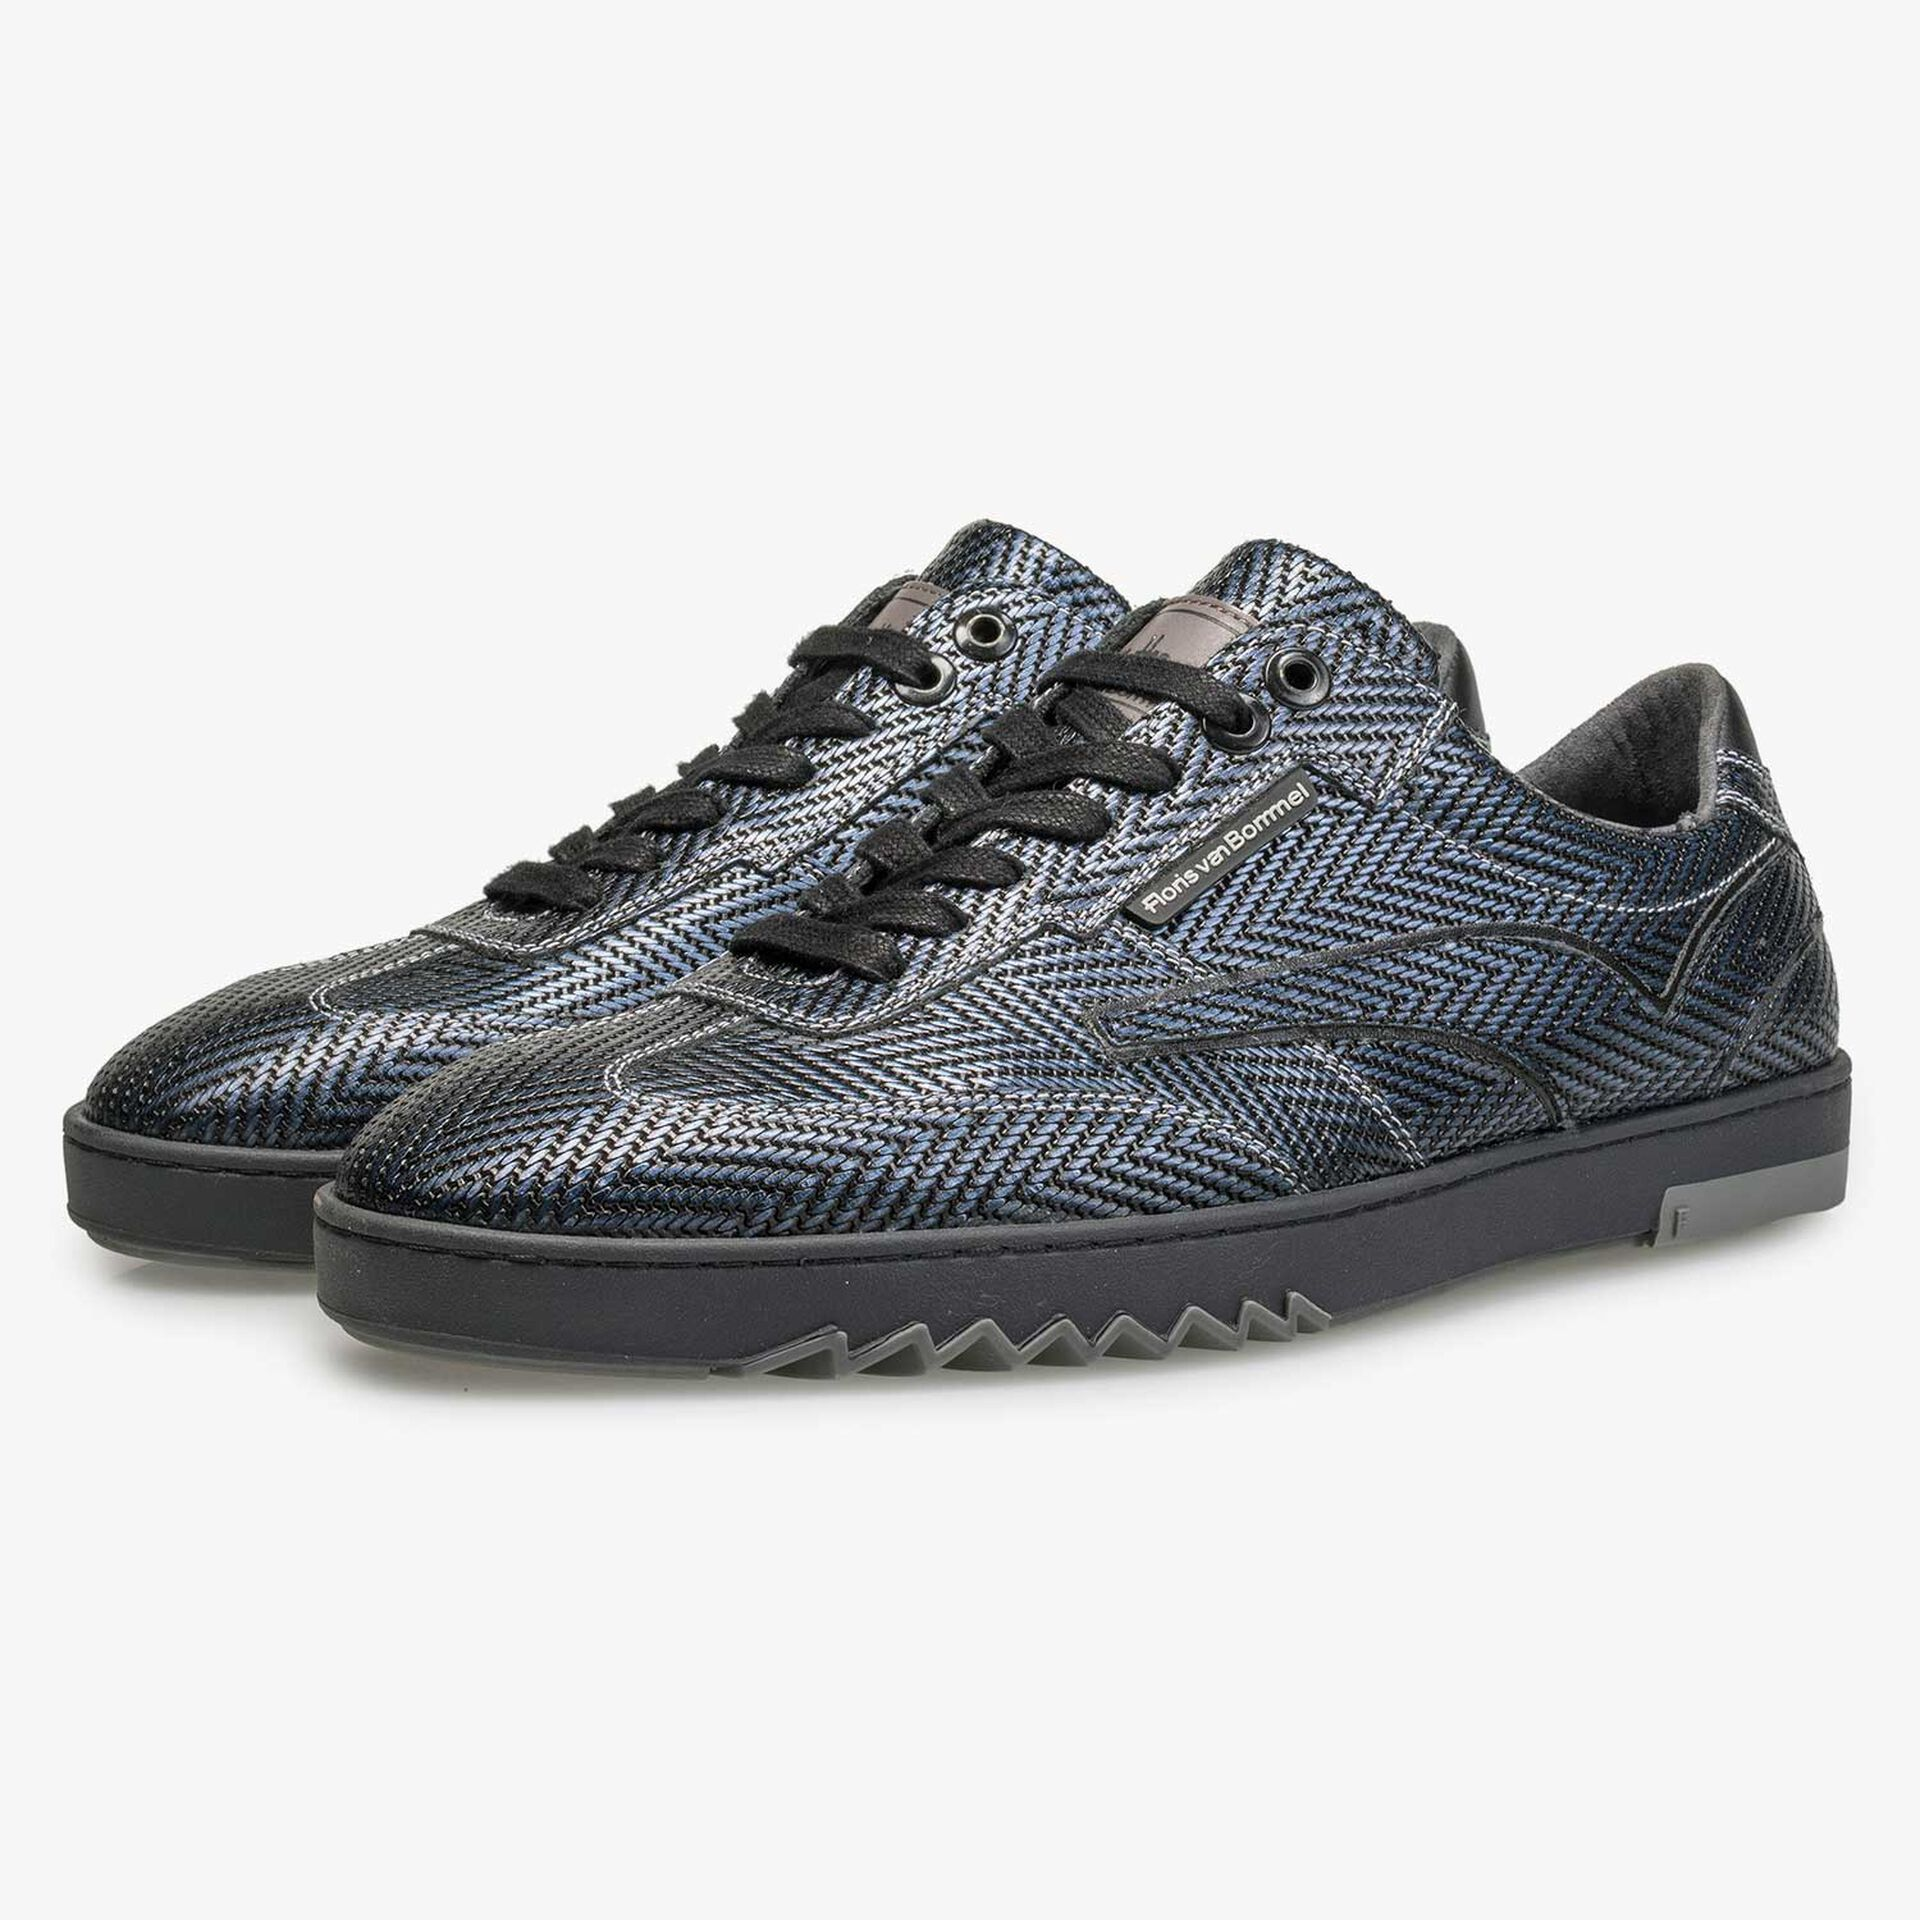 Blue Premium sneaker with herringbone pattern